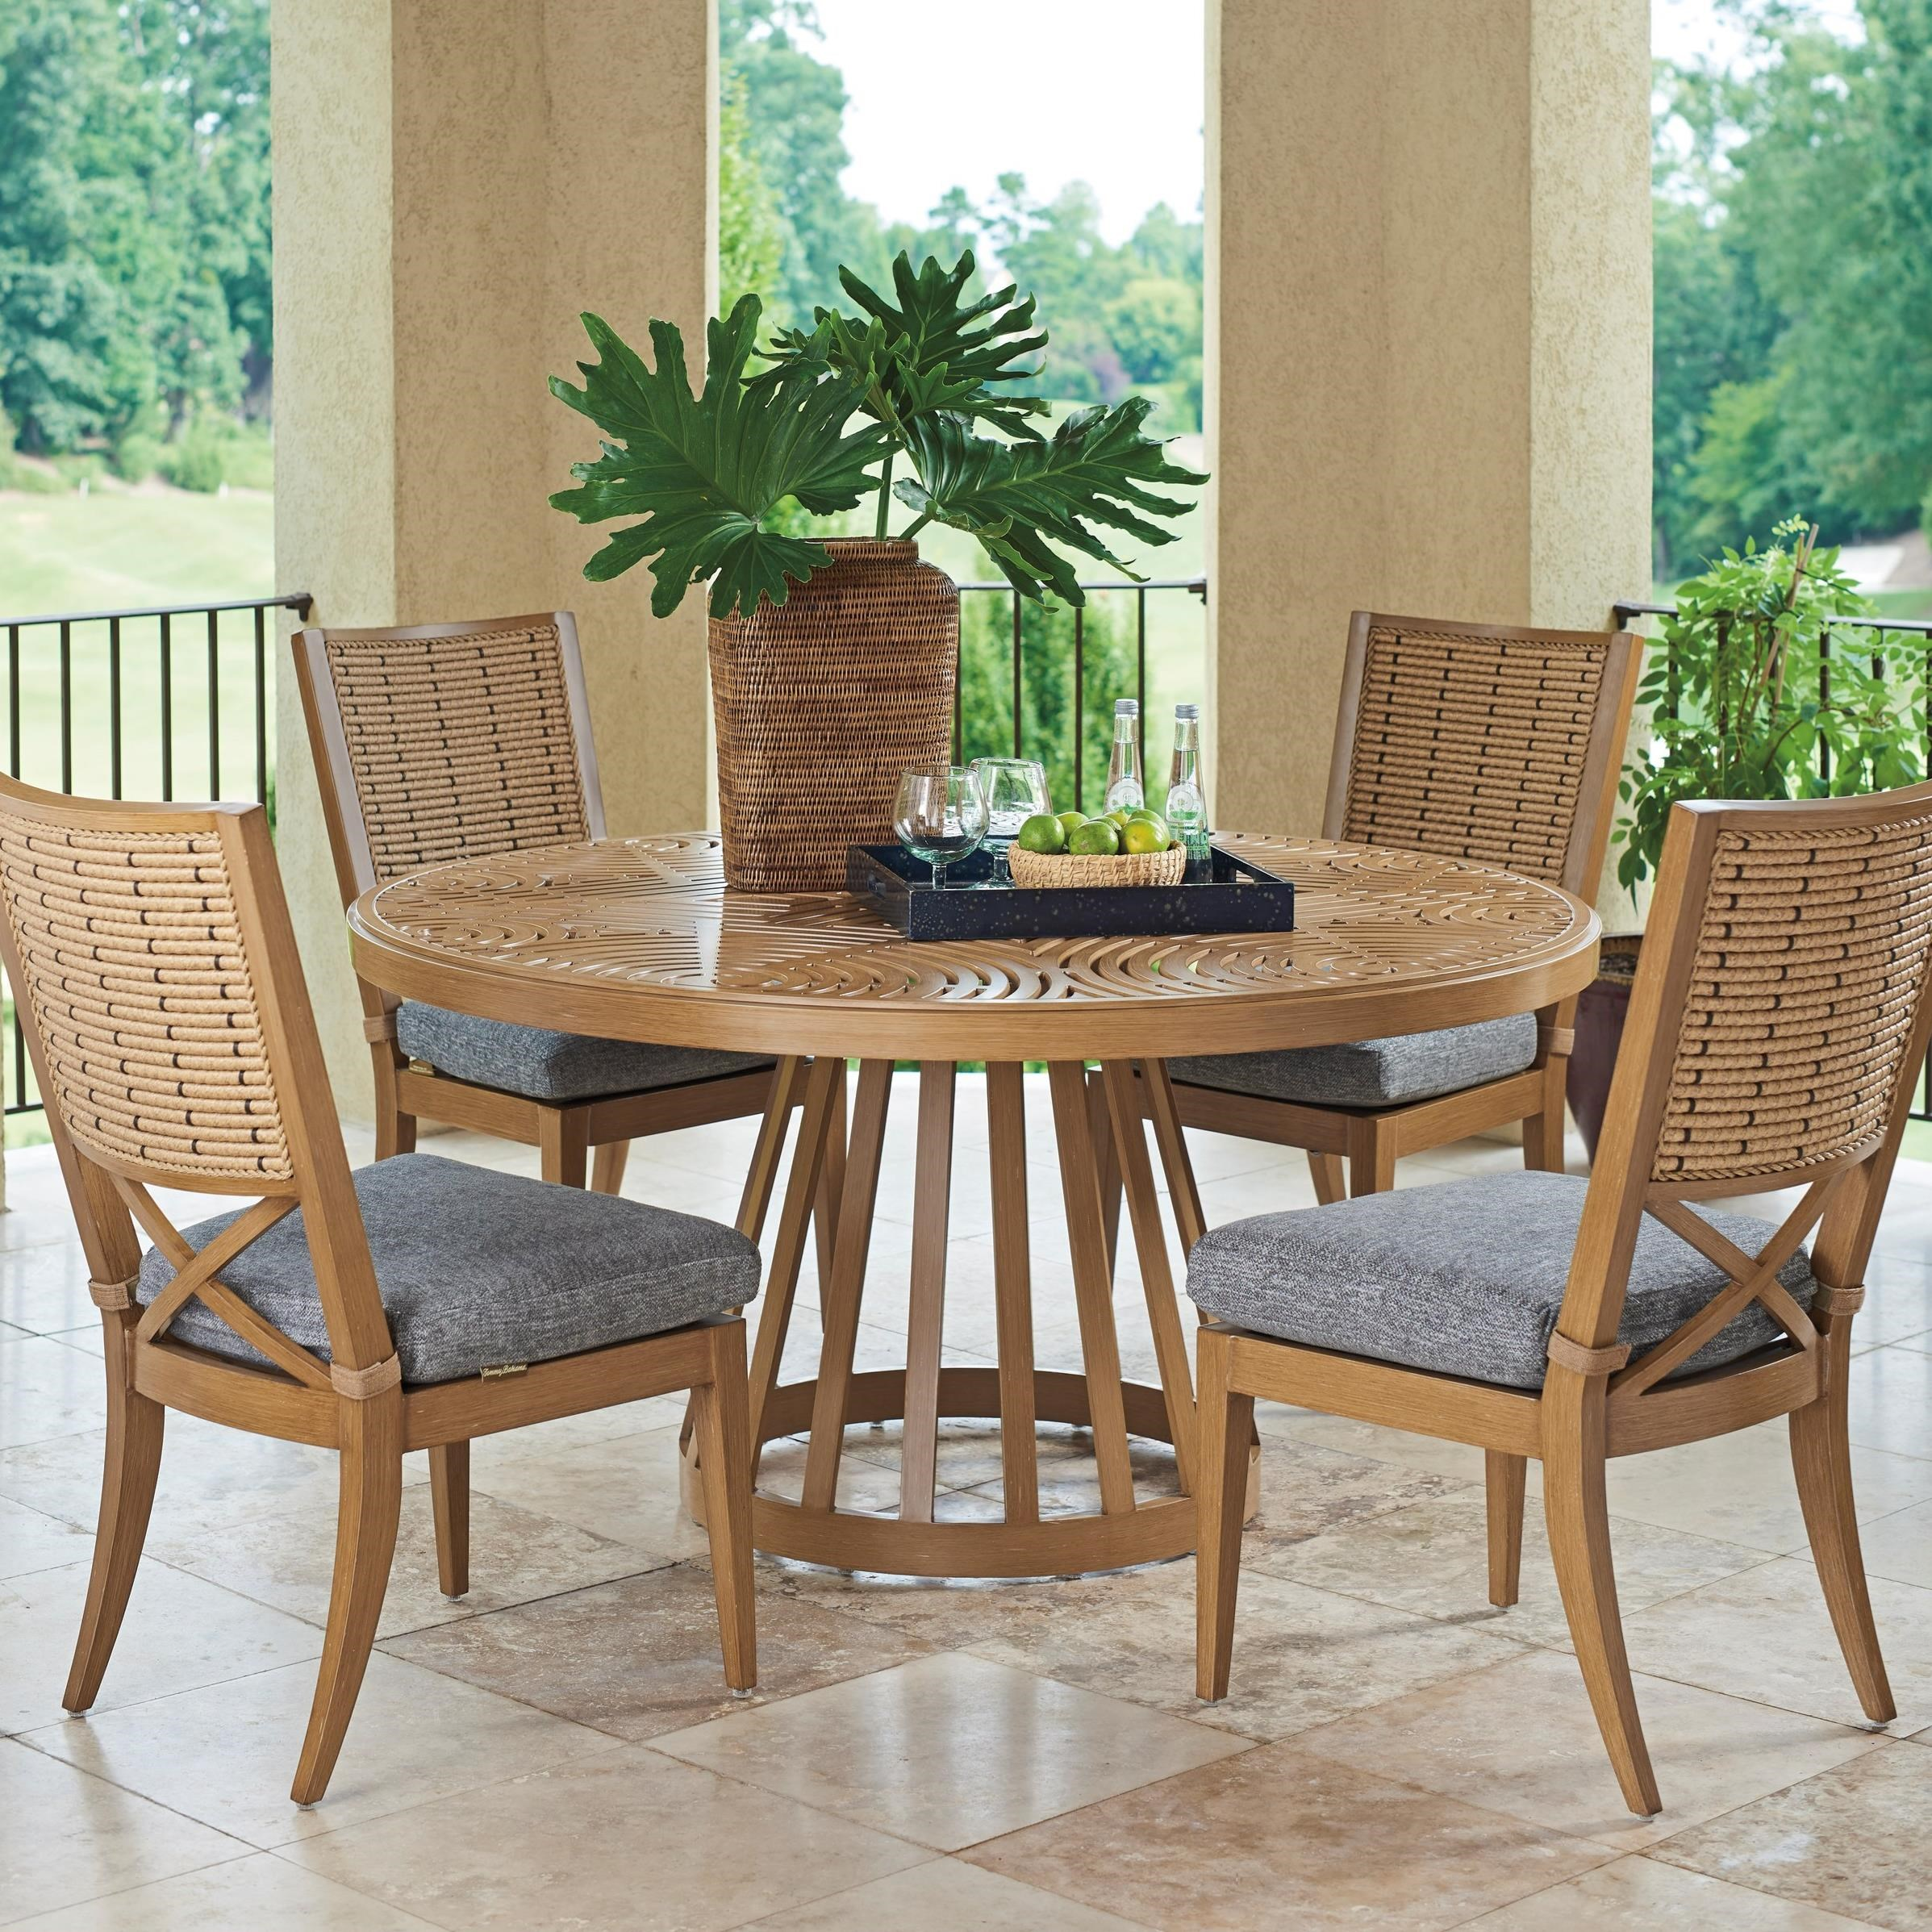 Los Altos Valley View 5-Piece Outdoor Dining Set by Tommy Bahama Outdoor Living at Baer's Furniture